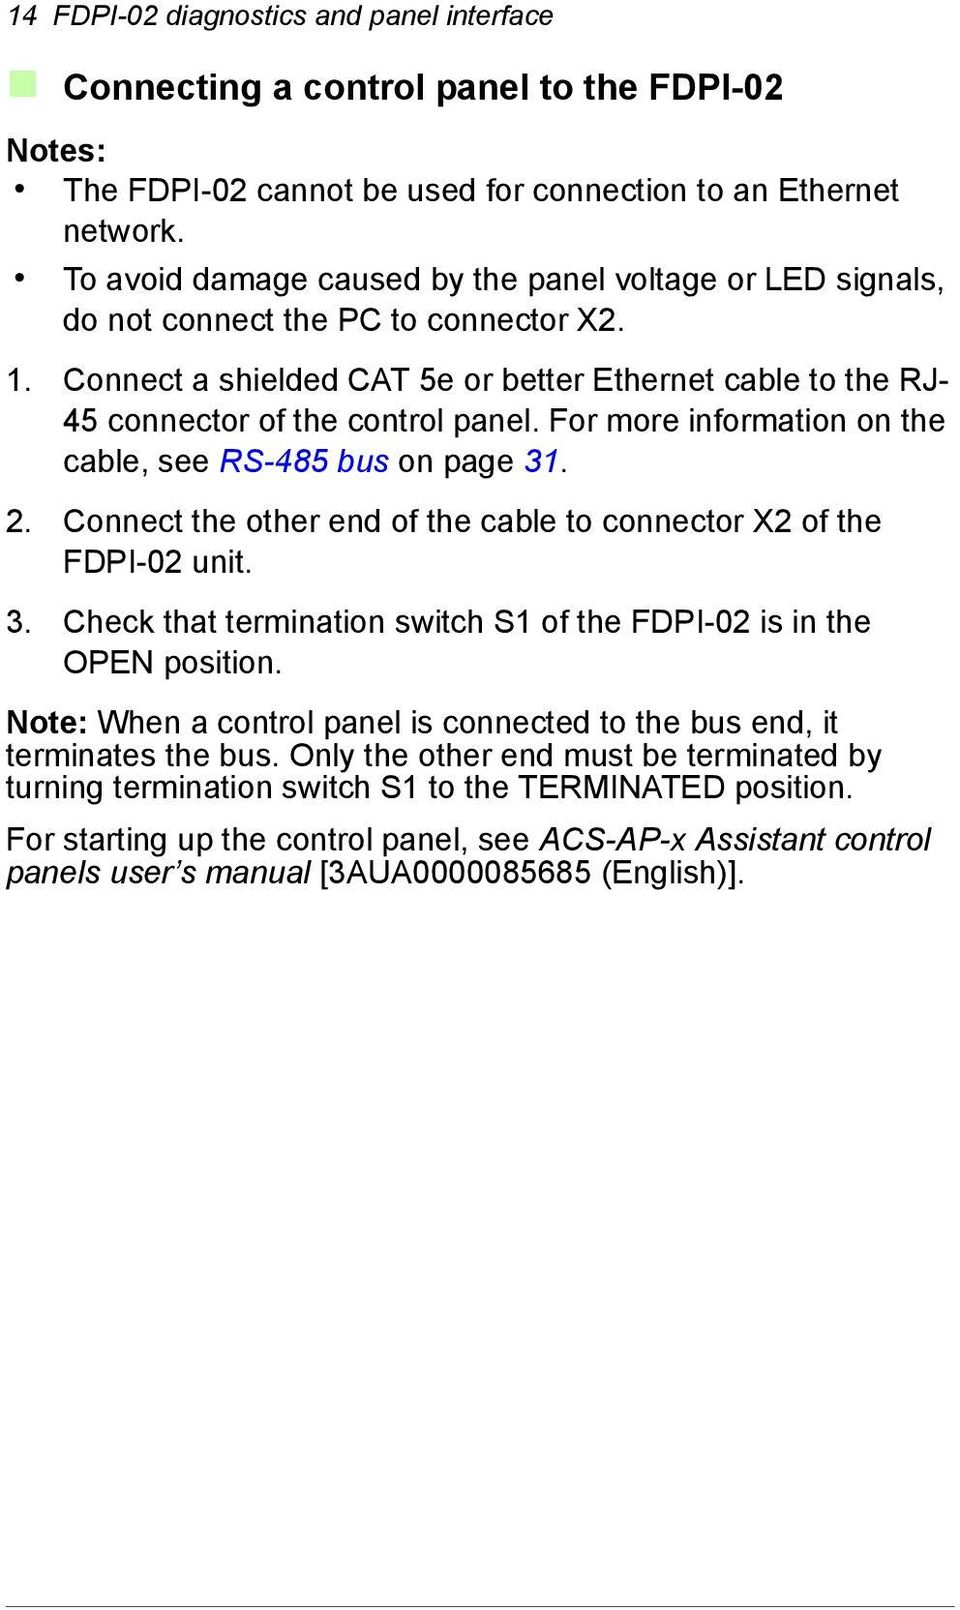 For more information on the cable, see RS-485 bus on page 31. 2. Connect the other end of the cable to connector X2 of the FDPI-02 unit. 3. Check that termination switch S1 of the FDPI-02 is in the OPEN position.